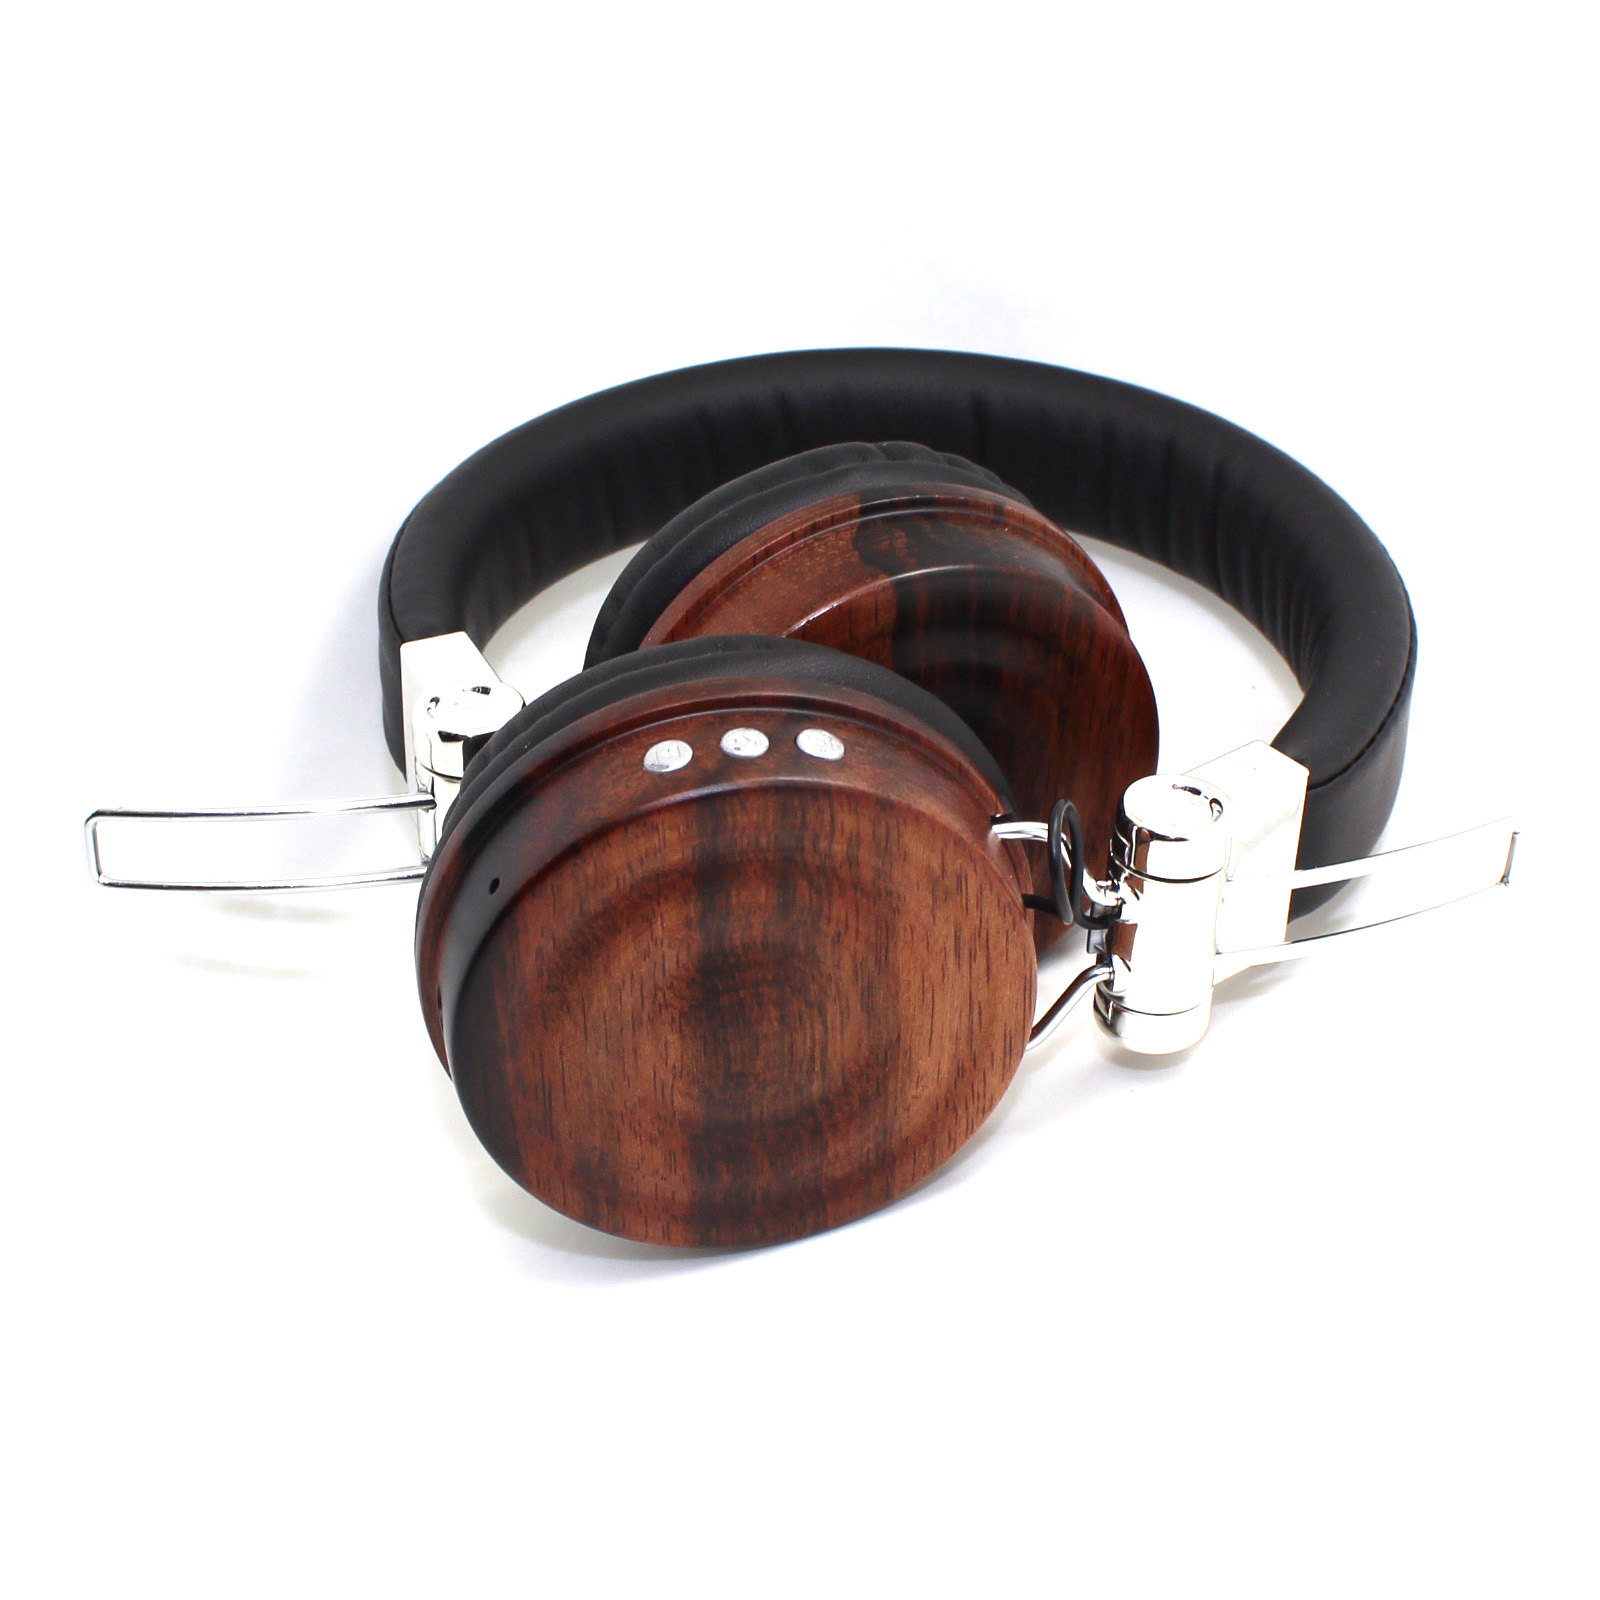 OEM-BL159 Low Price gold metal wood headphones gift bluetooth on ear fashionable wooden headset for (3)